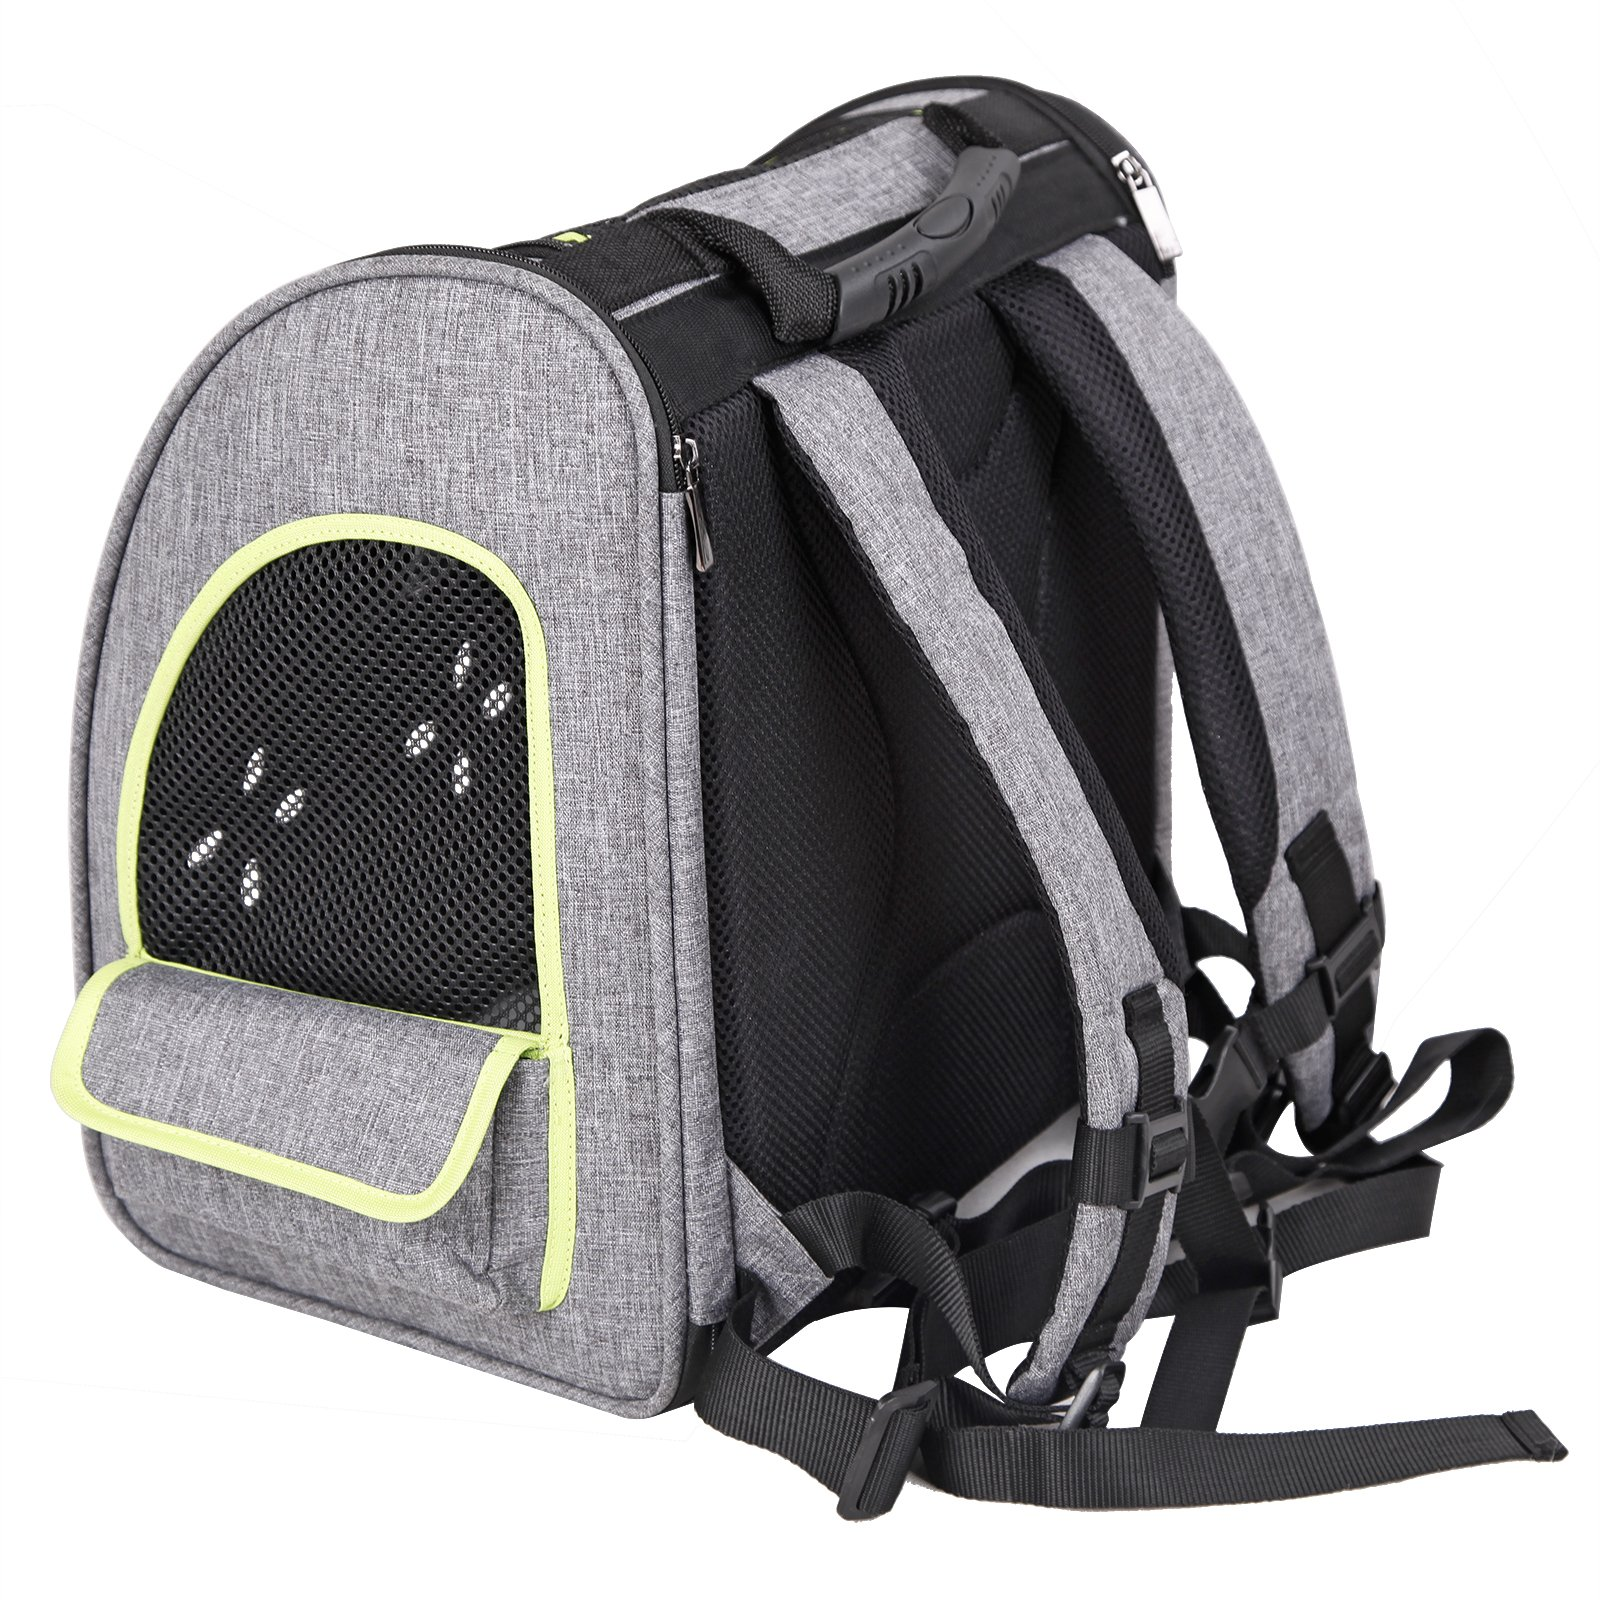 Petsfit Dogs Carriers Backpack for Cat/Dog/Guinea Pig/Bunny Durable and Comfortable Pet Bag by Petsfit (Image #5)